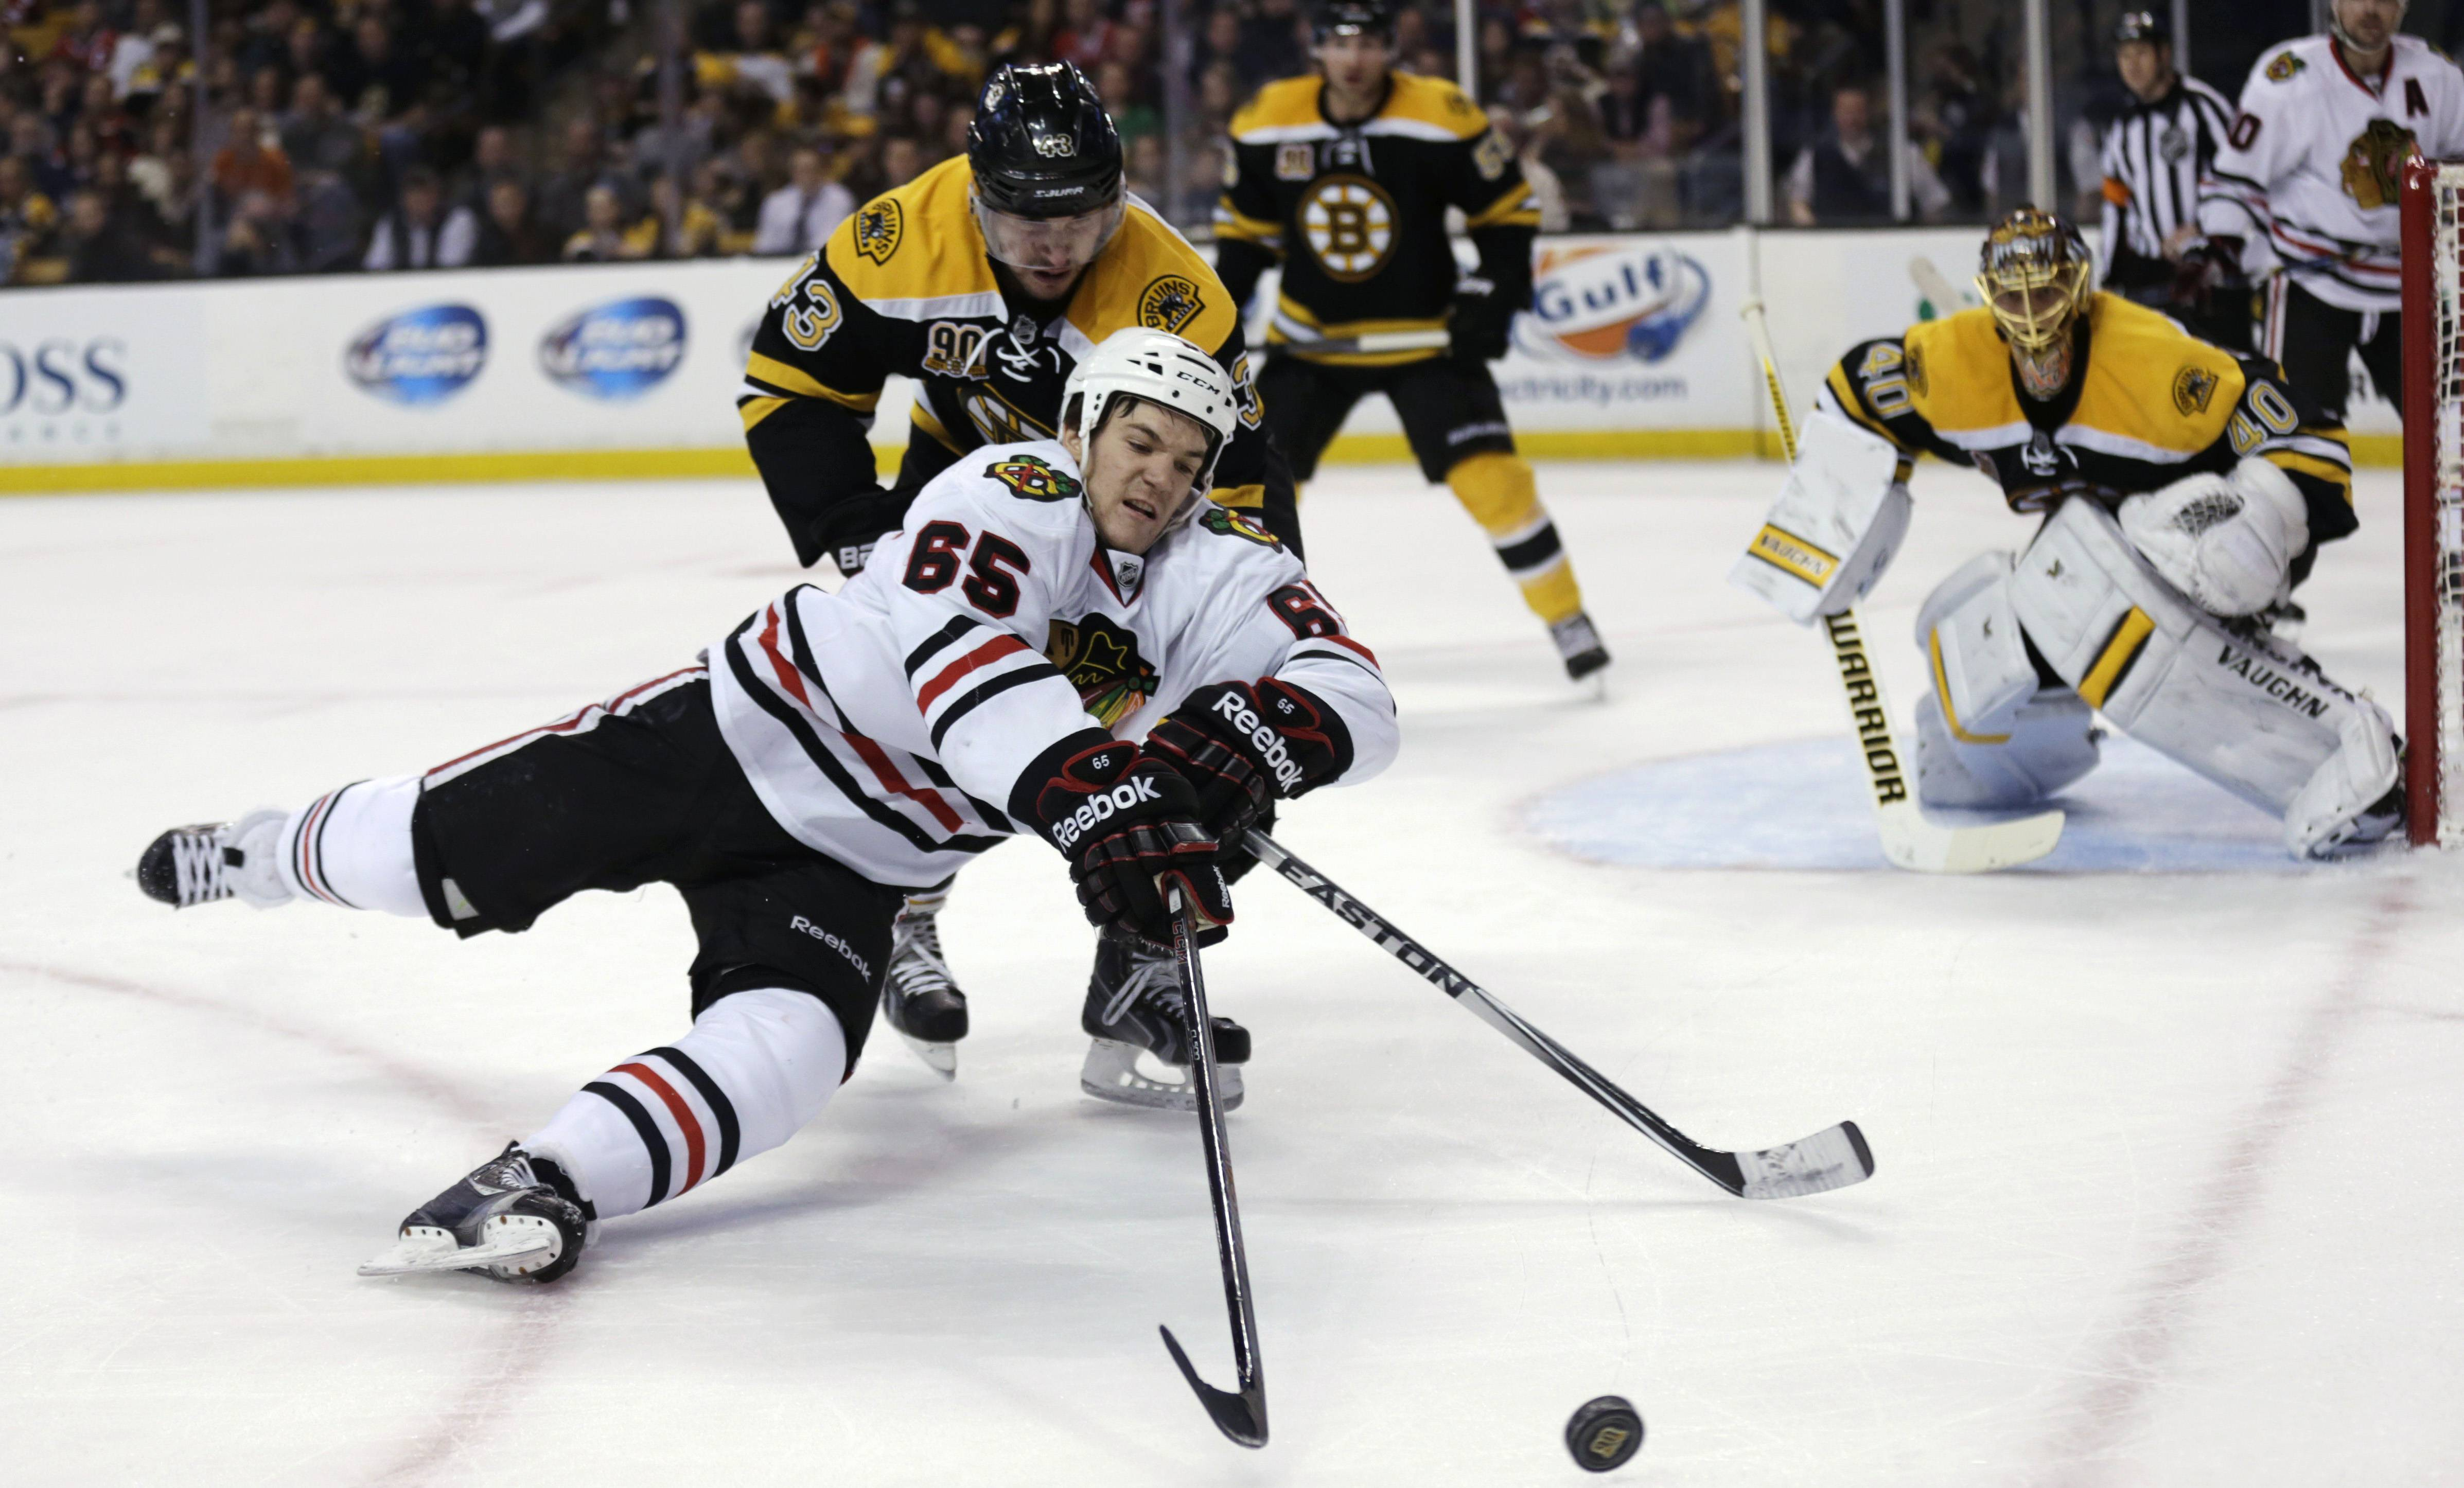 Blackhawks forward Andrew Shaw (65) is knocked to the ice by Boston Bruins defenseman Matt Bartkowski (43) as they chase the puck during the first period of an NHL hockey game, Thursday, March 27, 2014, in Boston.